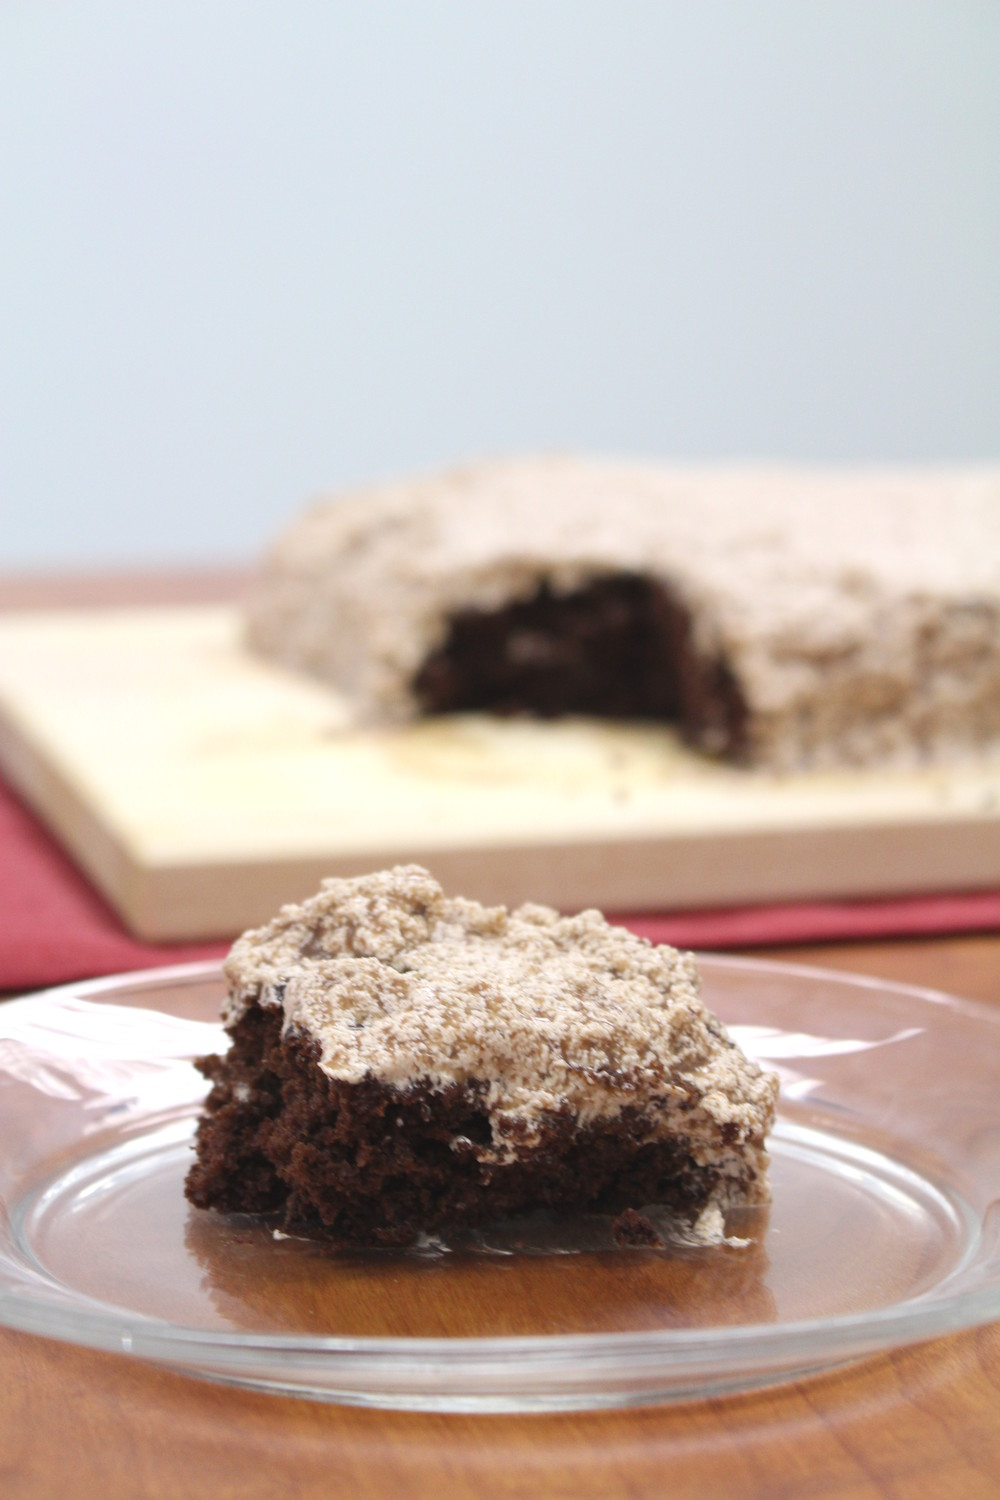 Cake Mix Cookies With Coke